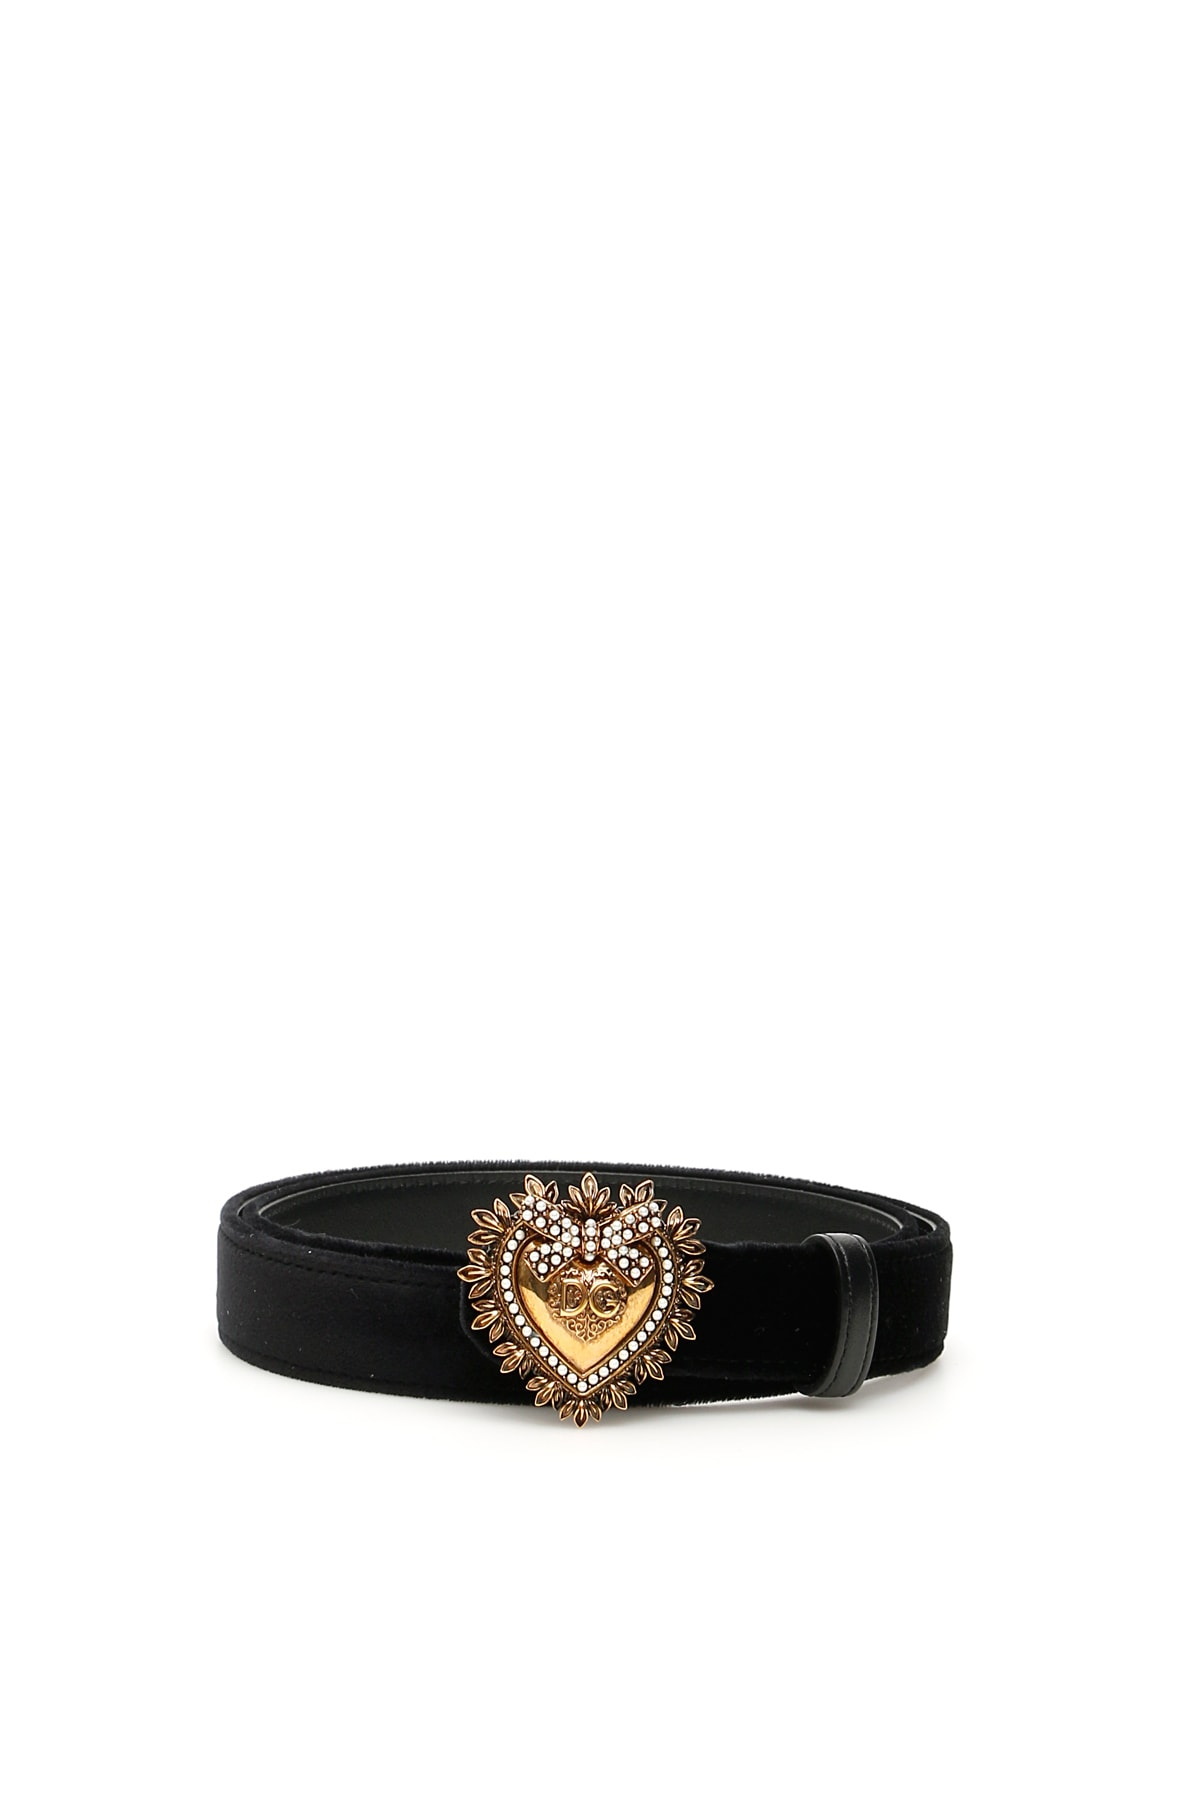 Dolce & Gabbana Dolce&Gabbana Devotion Heart-Buckle Belt In Black